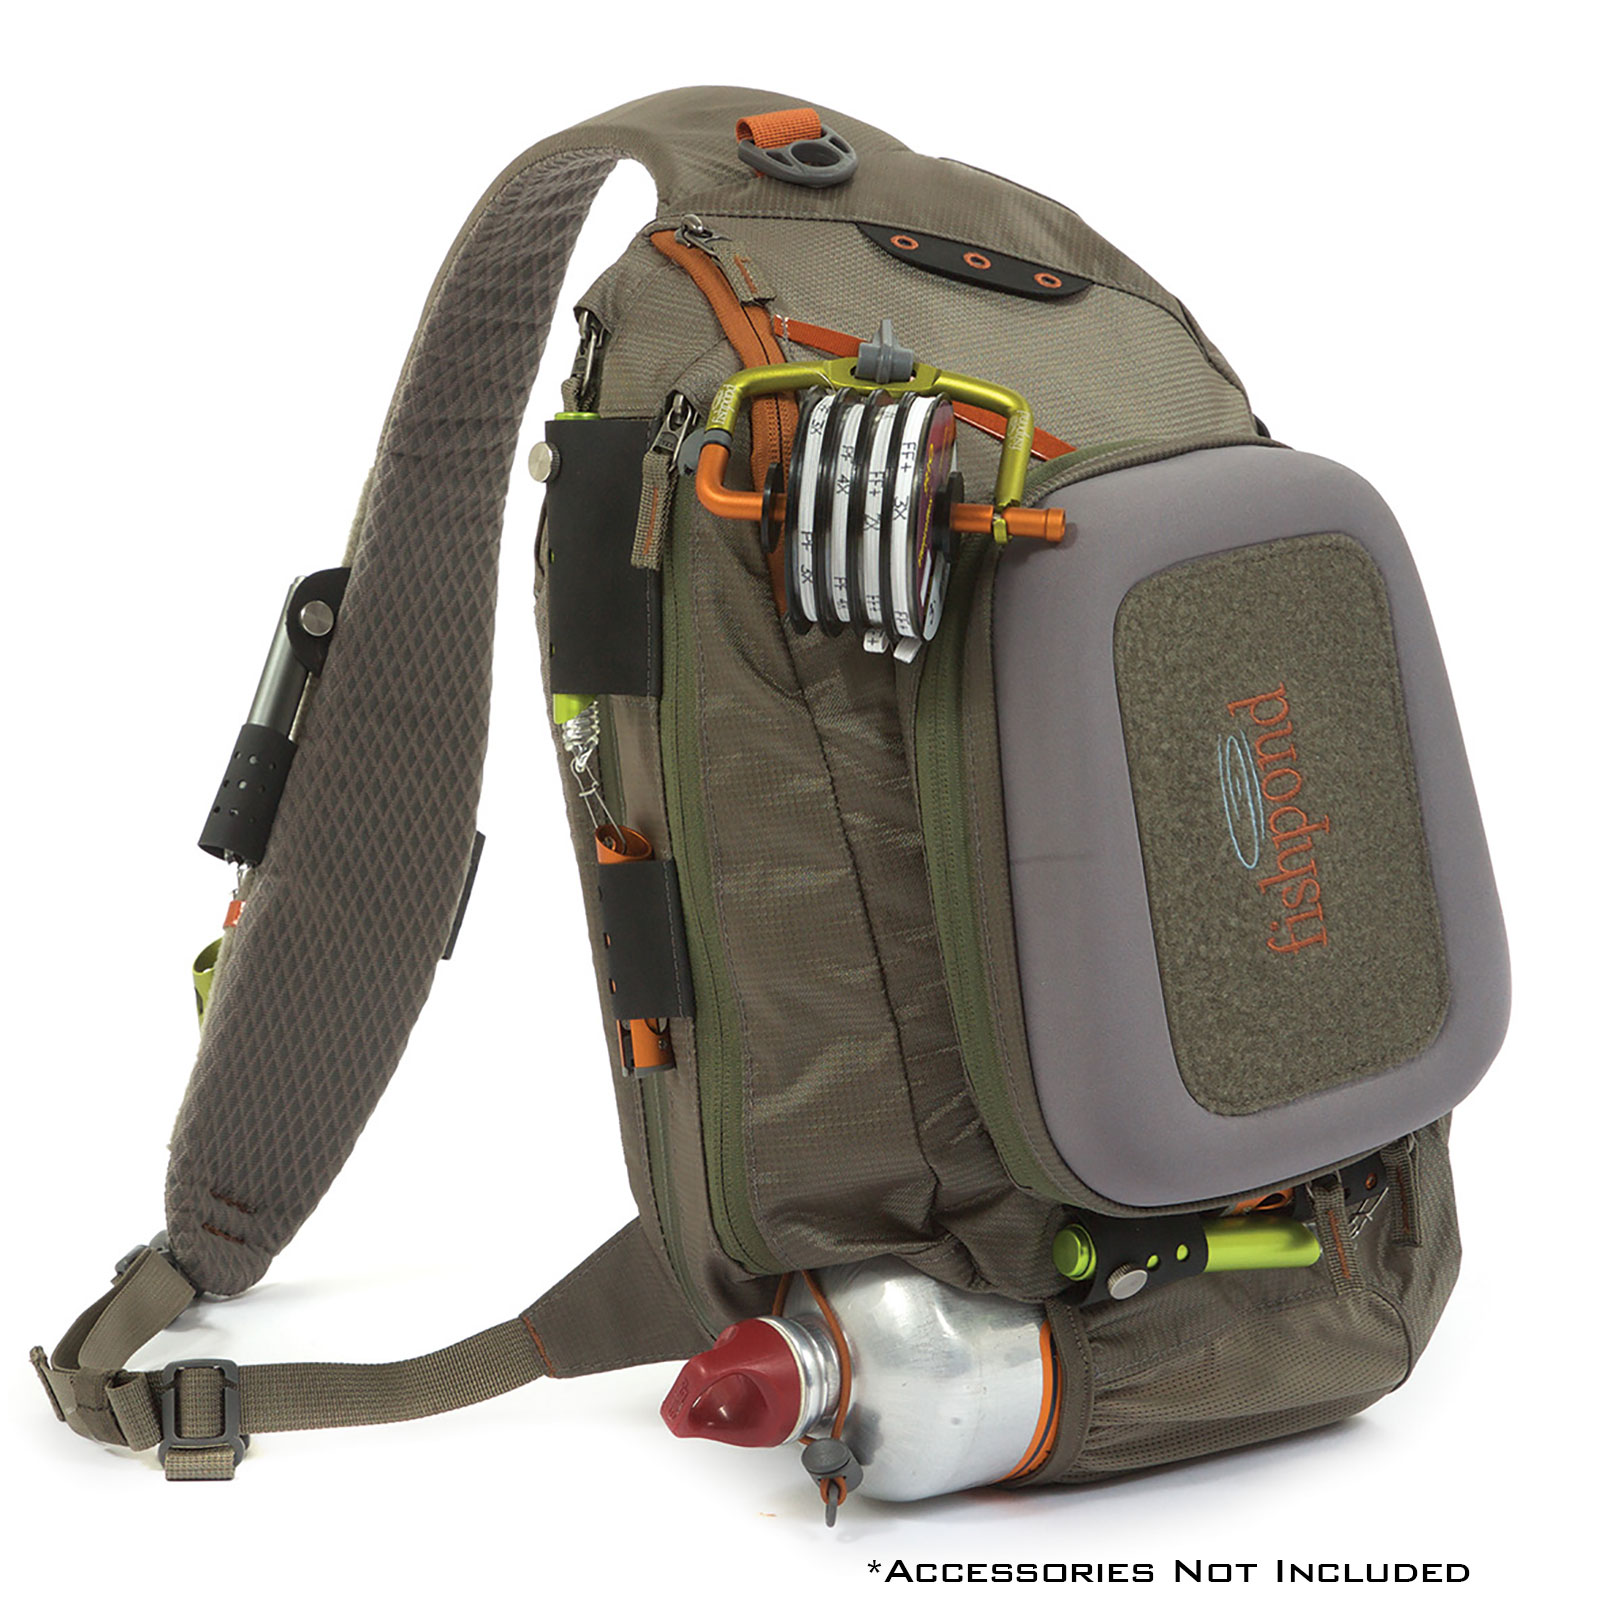 fishpond summit sling fly fishing pack hands free gear